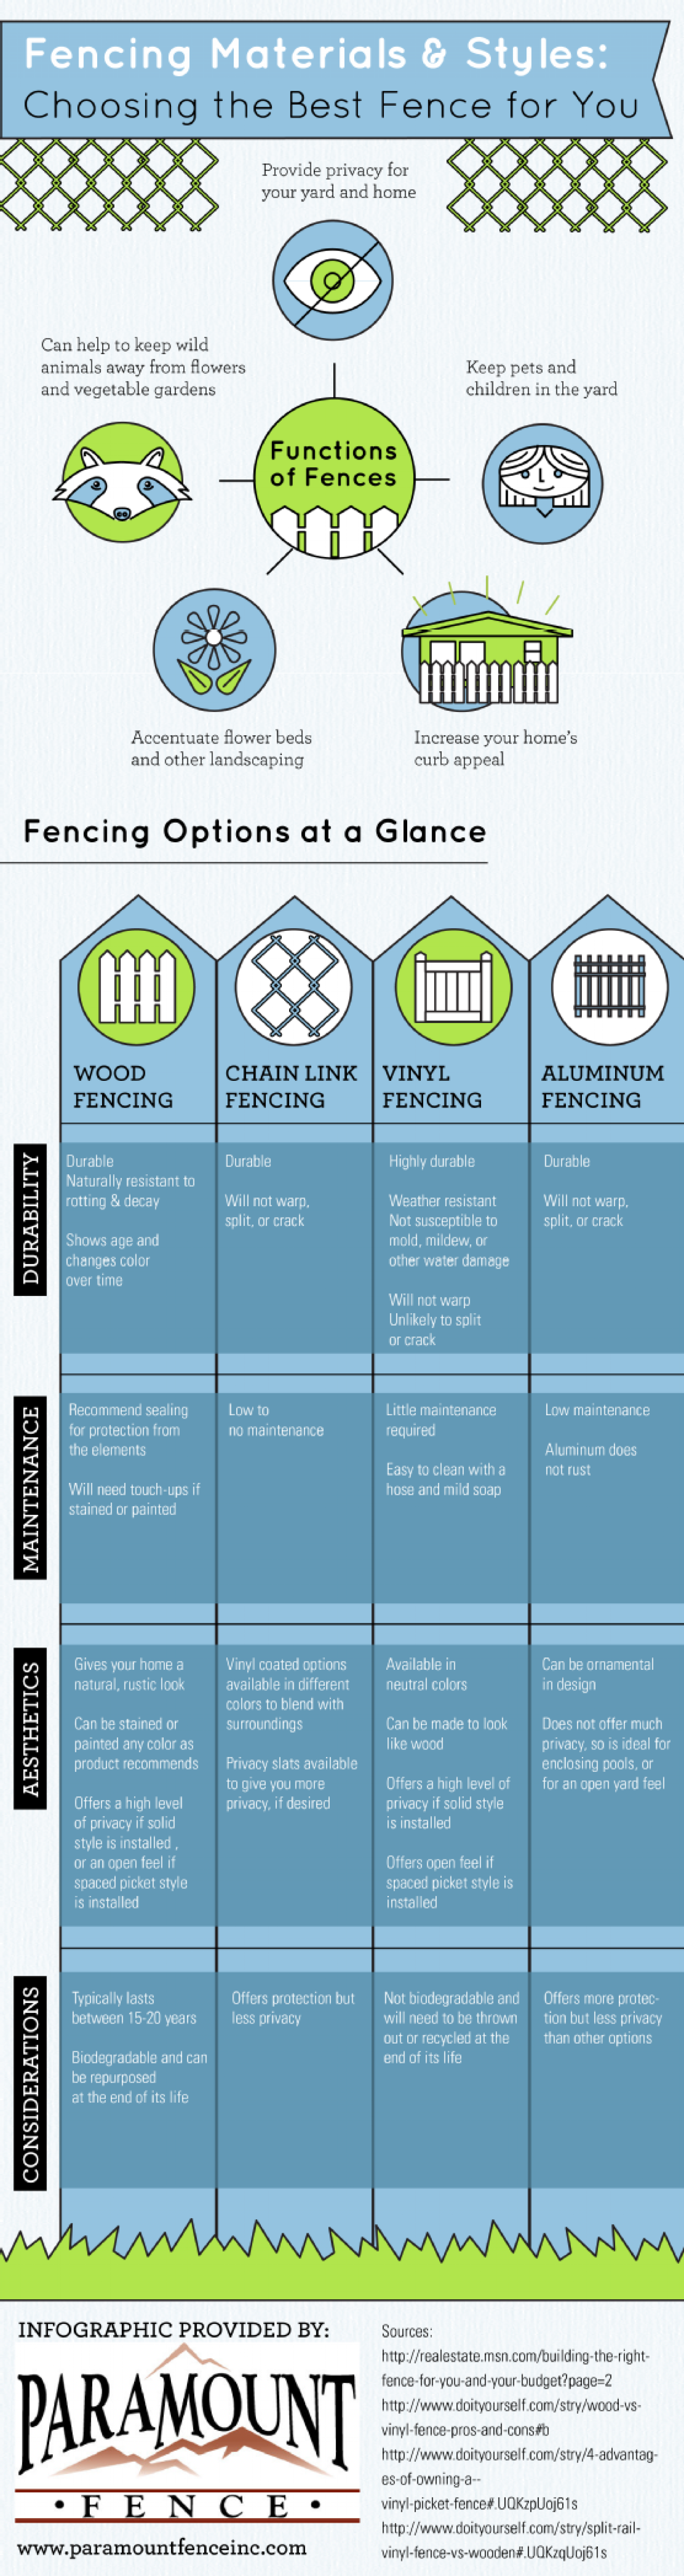 Fencing Materials and Styles: Choosing the Best Fence for You Infographic